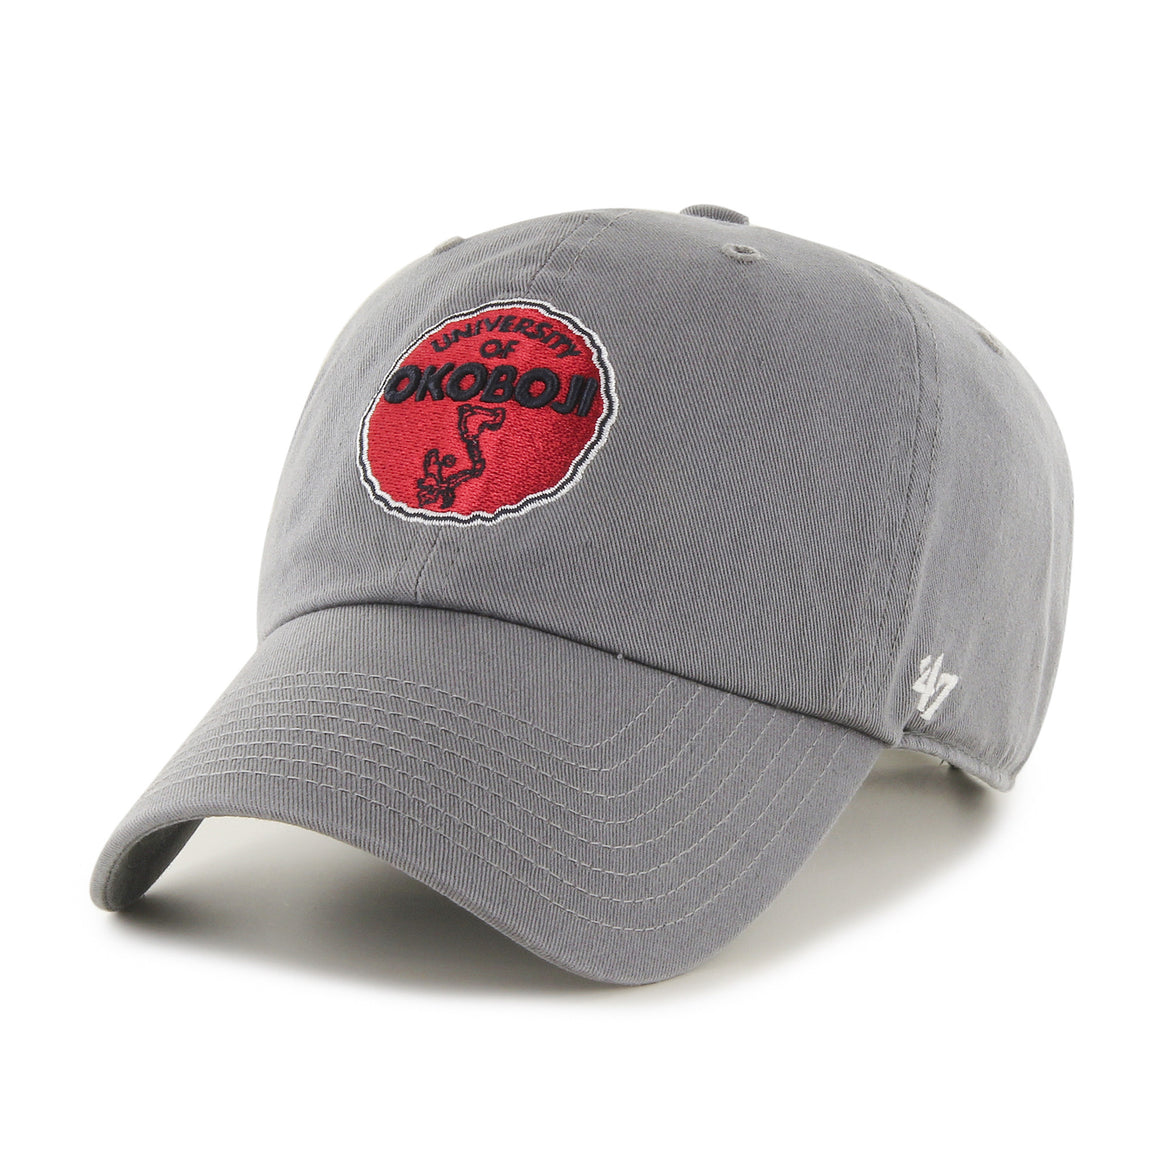 University of Okoboji '47 Dark Gray Clean Up Cap